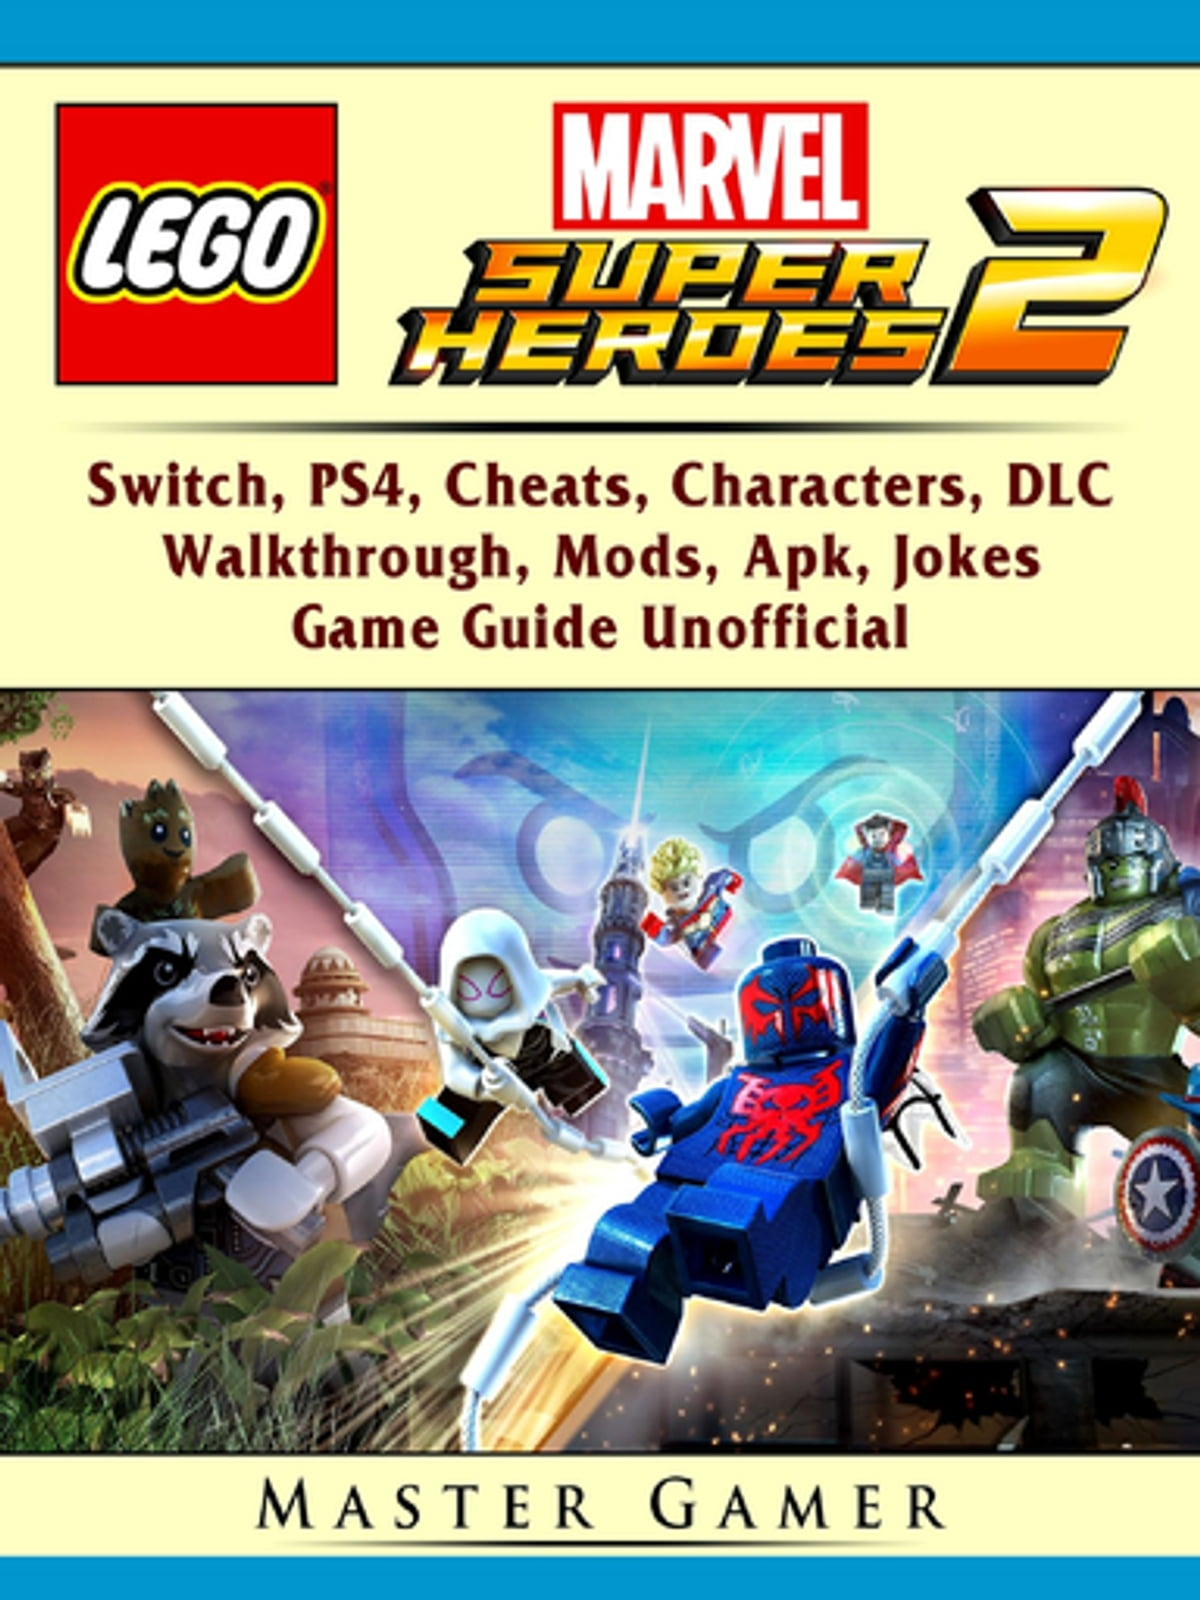 Lego Marvel Super Heroes 2, Switch, PS4, Cheats, Characters, DLC,  Walkthrough, Mods, Apk, Jokes, Game Guide Unofficial ebook by Master Gamer  - Rakuten